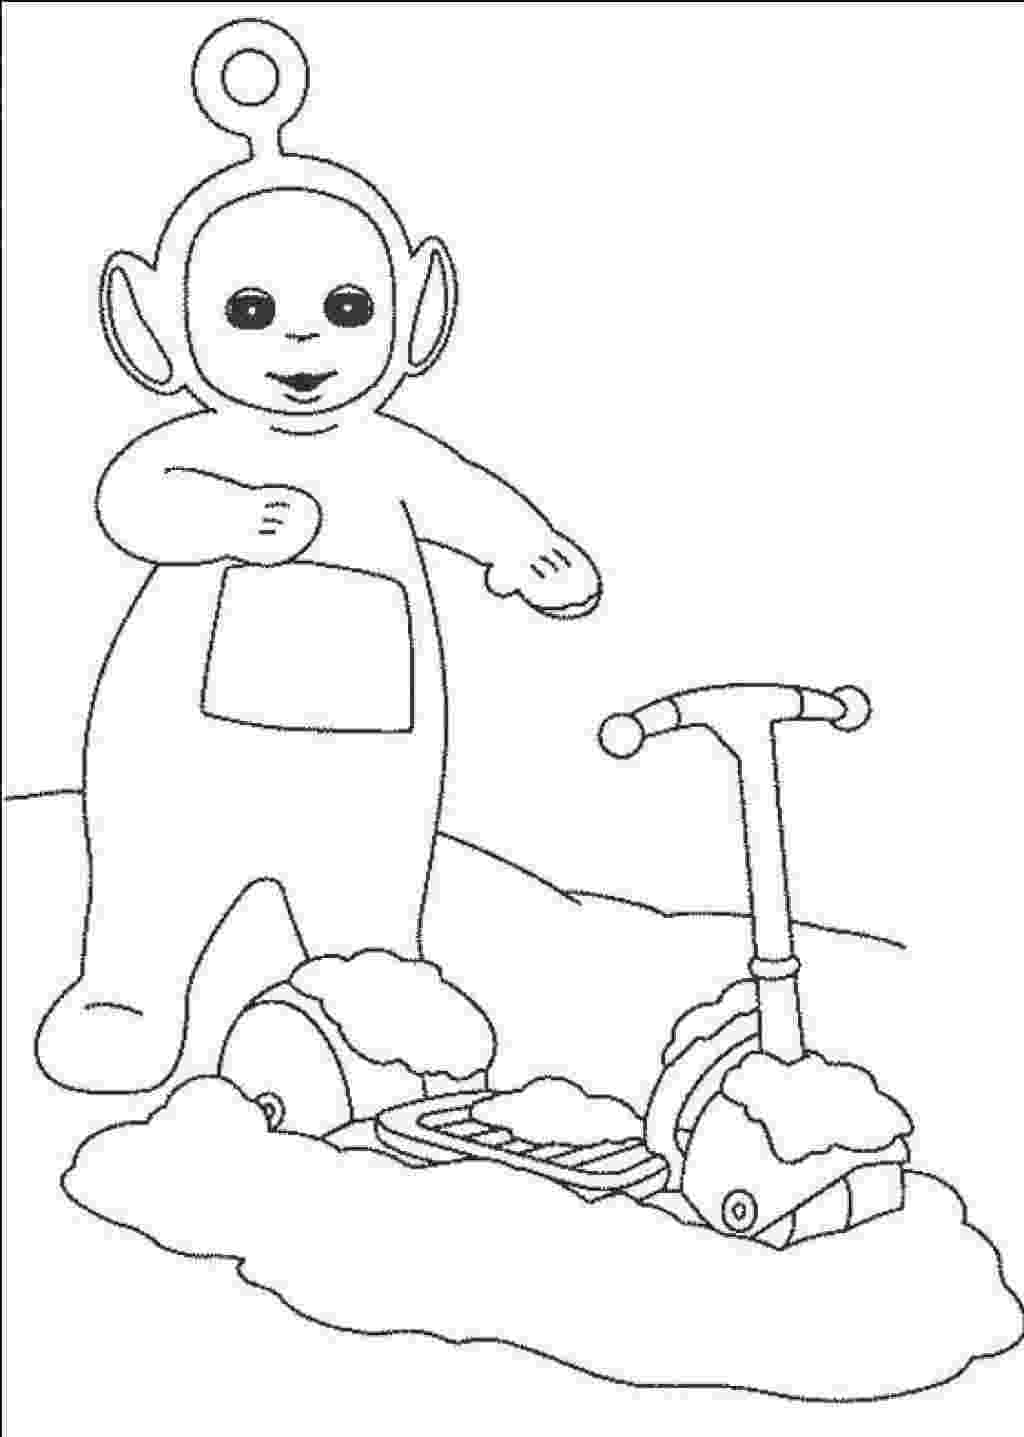 teletubbies colouring pages free printable teletubbies coloring pages for kids teletubbies colouring pages